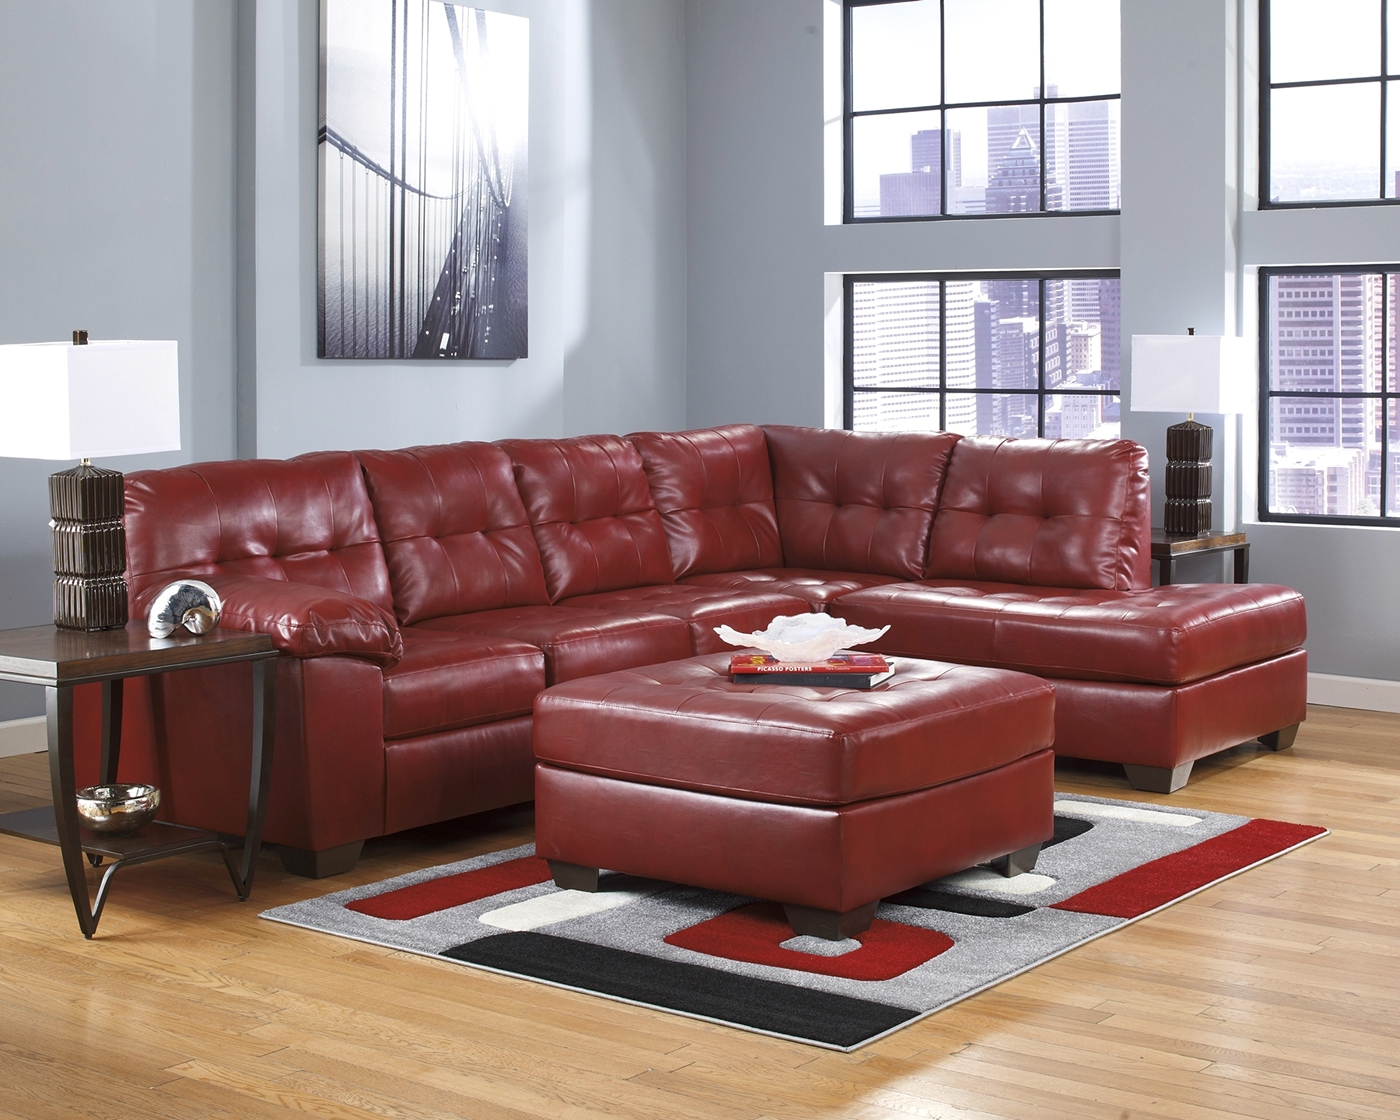 Lounge Couch Company Red Sectional Red Bonded Leather Sofa Shop Factory Direct